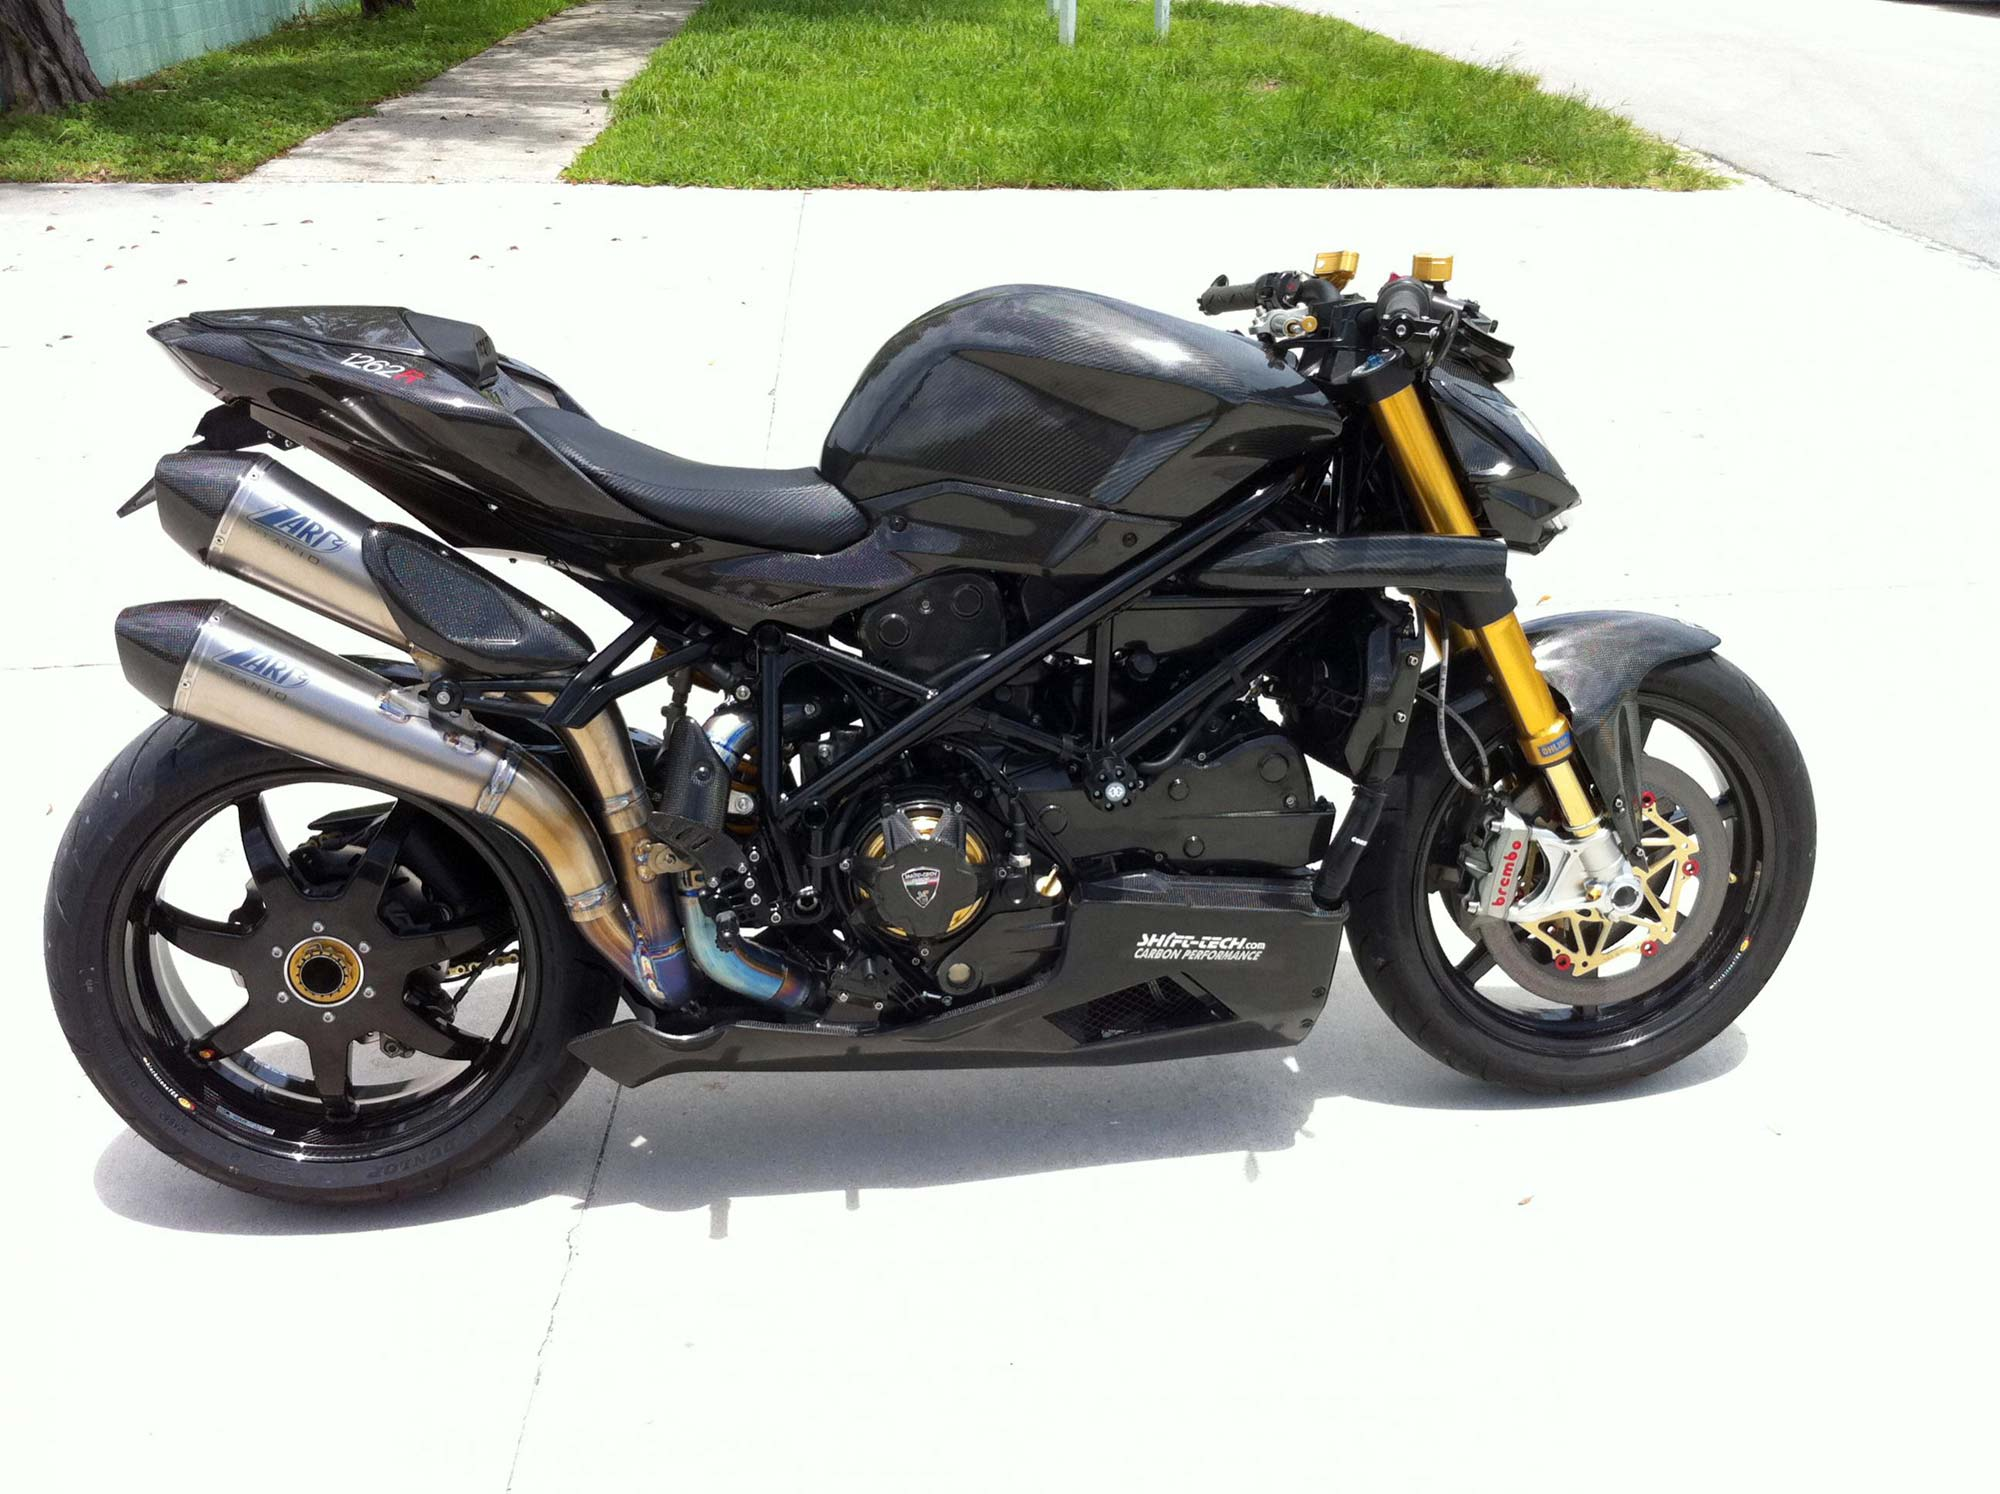 for sale: carbontastic ducati streetfighter that will eat